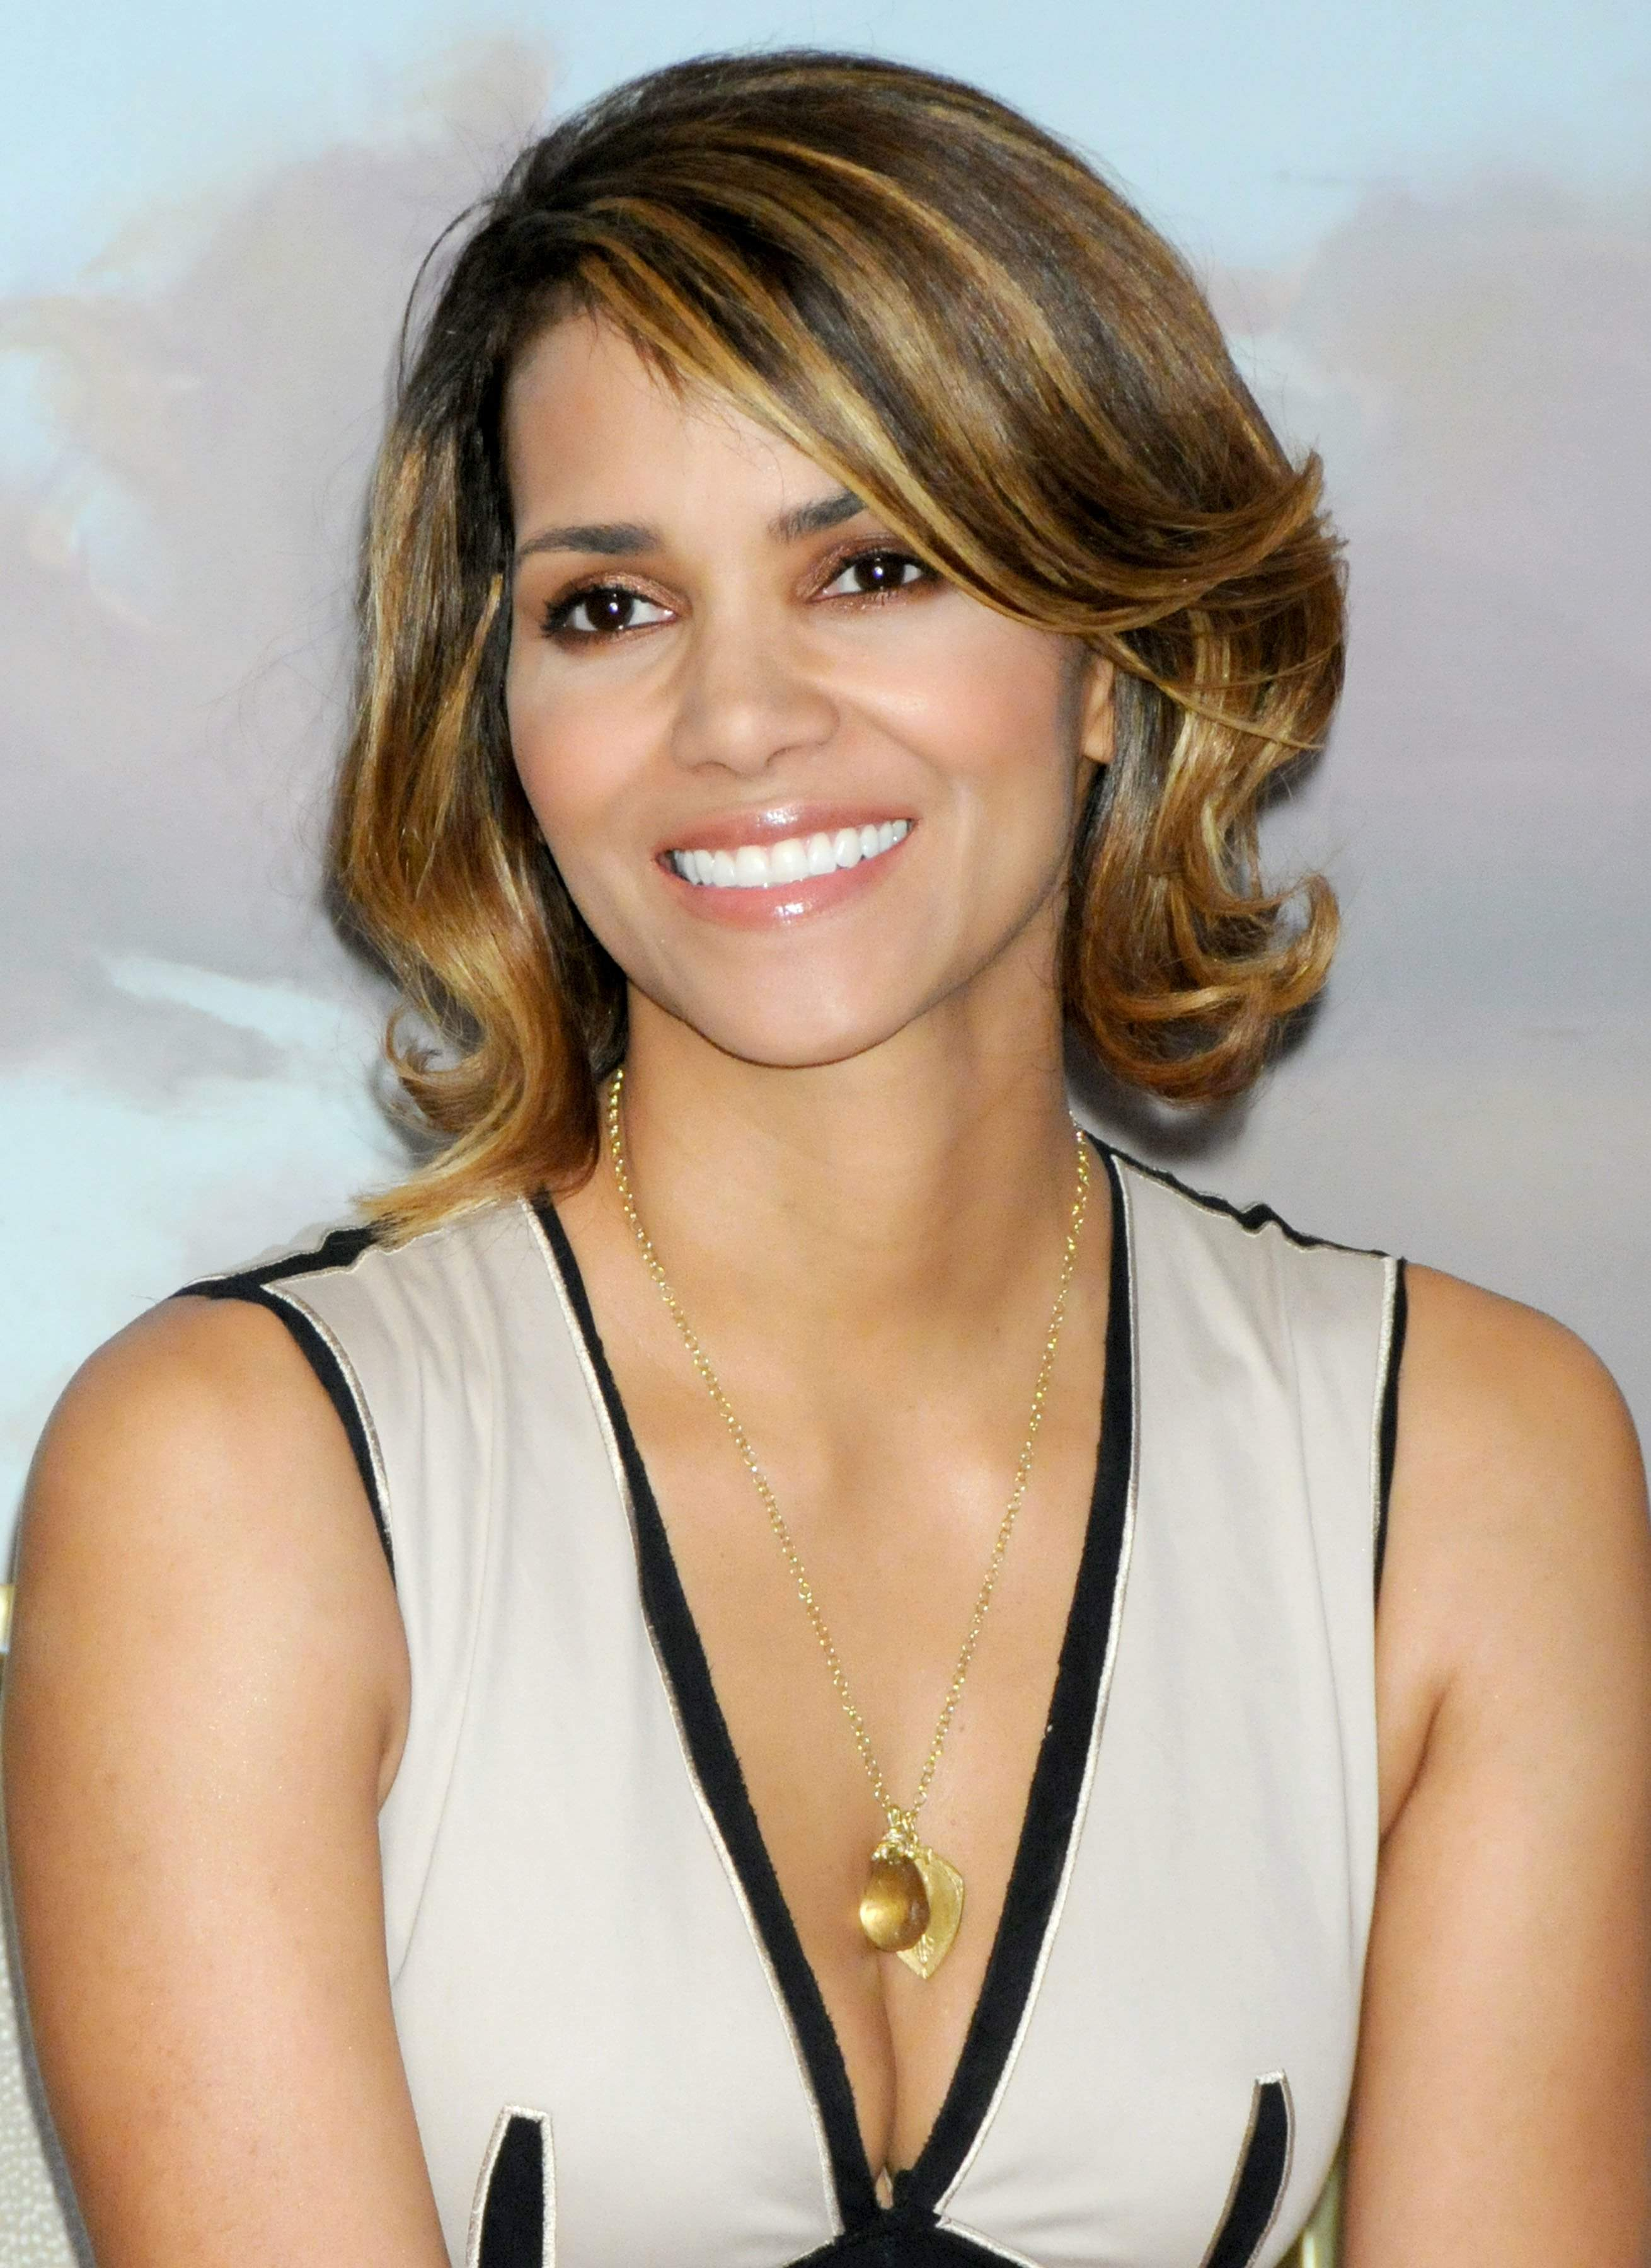 63370_Halle_Berry_2009_Jenesse_Silver_Rose_Gala_Auction_in_Beverly_Hills_75_122_449lo.jpg